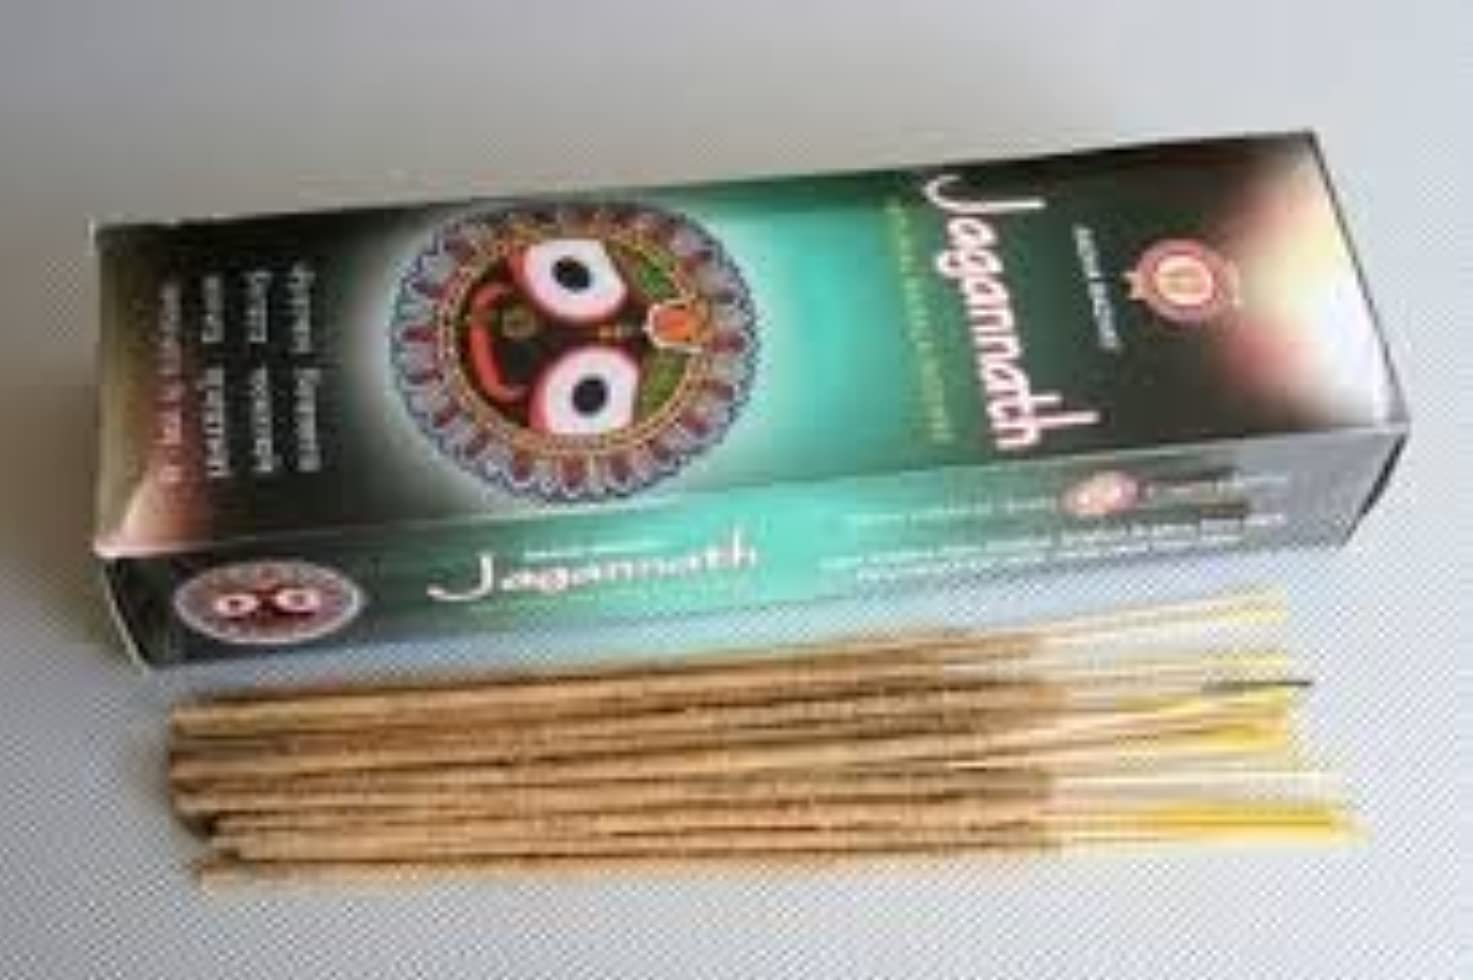 分析するハンドブック権威Jagannath Natural Masala Incense - (100 Gram Pack)